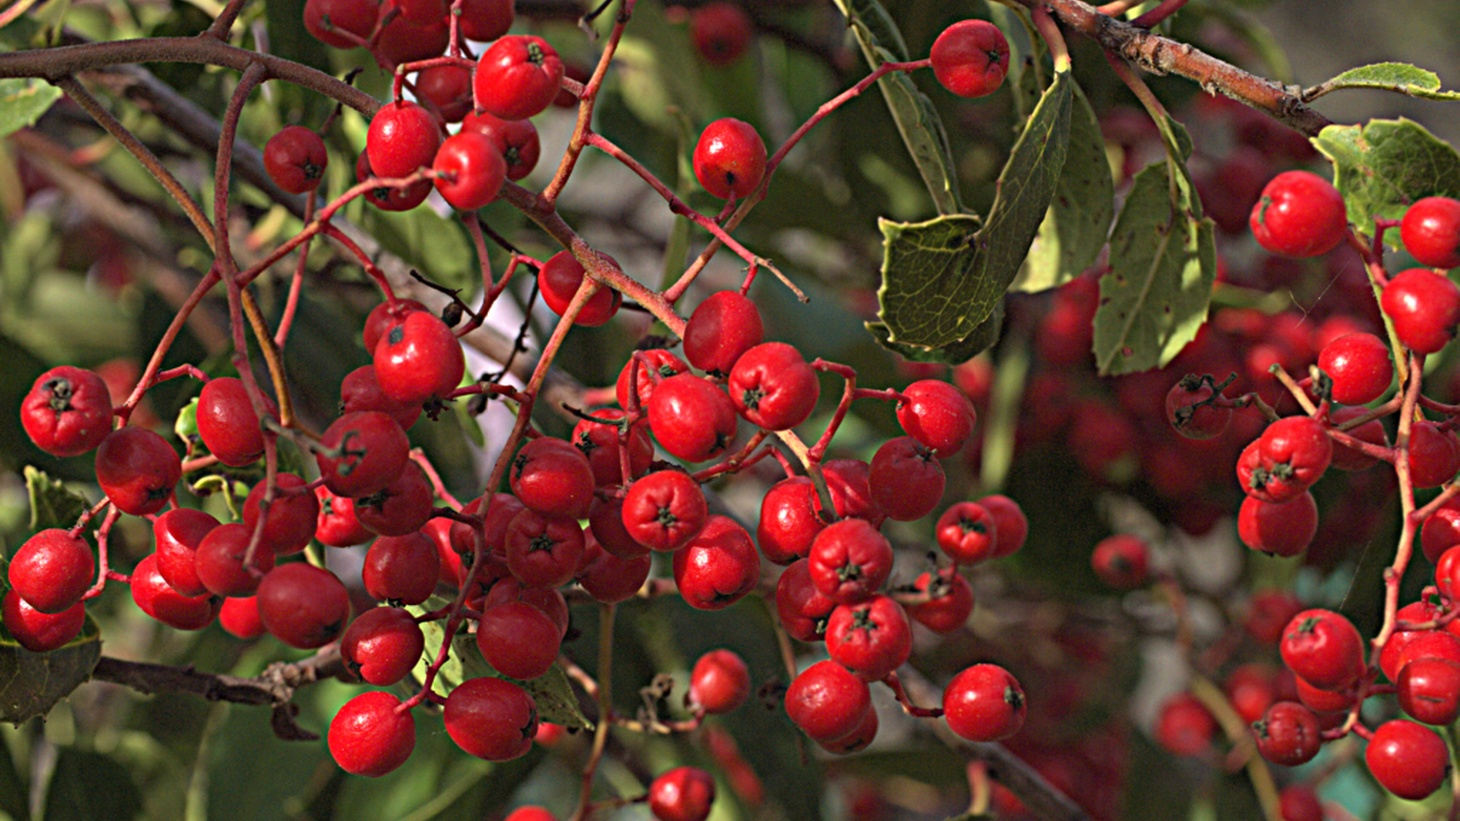 """Toyon is actually very edible, and it has been eaten by native folks up and down California,"" says Lila Higgins from the Natural History Museum of Los Angeles County."